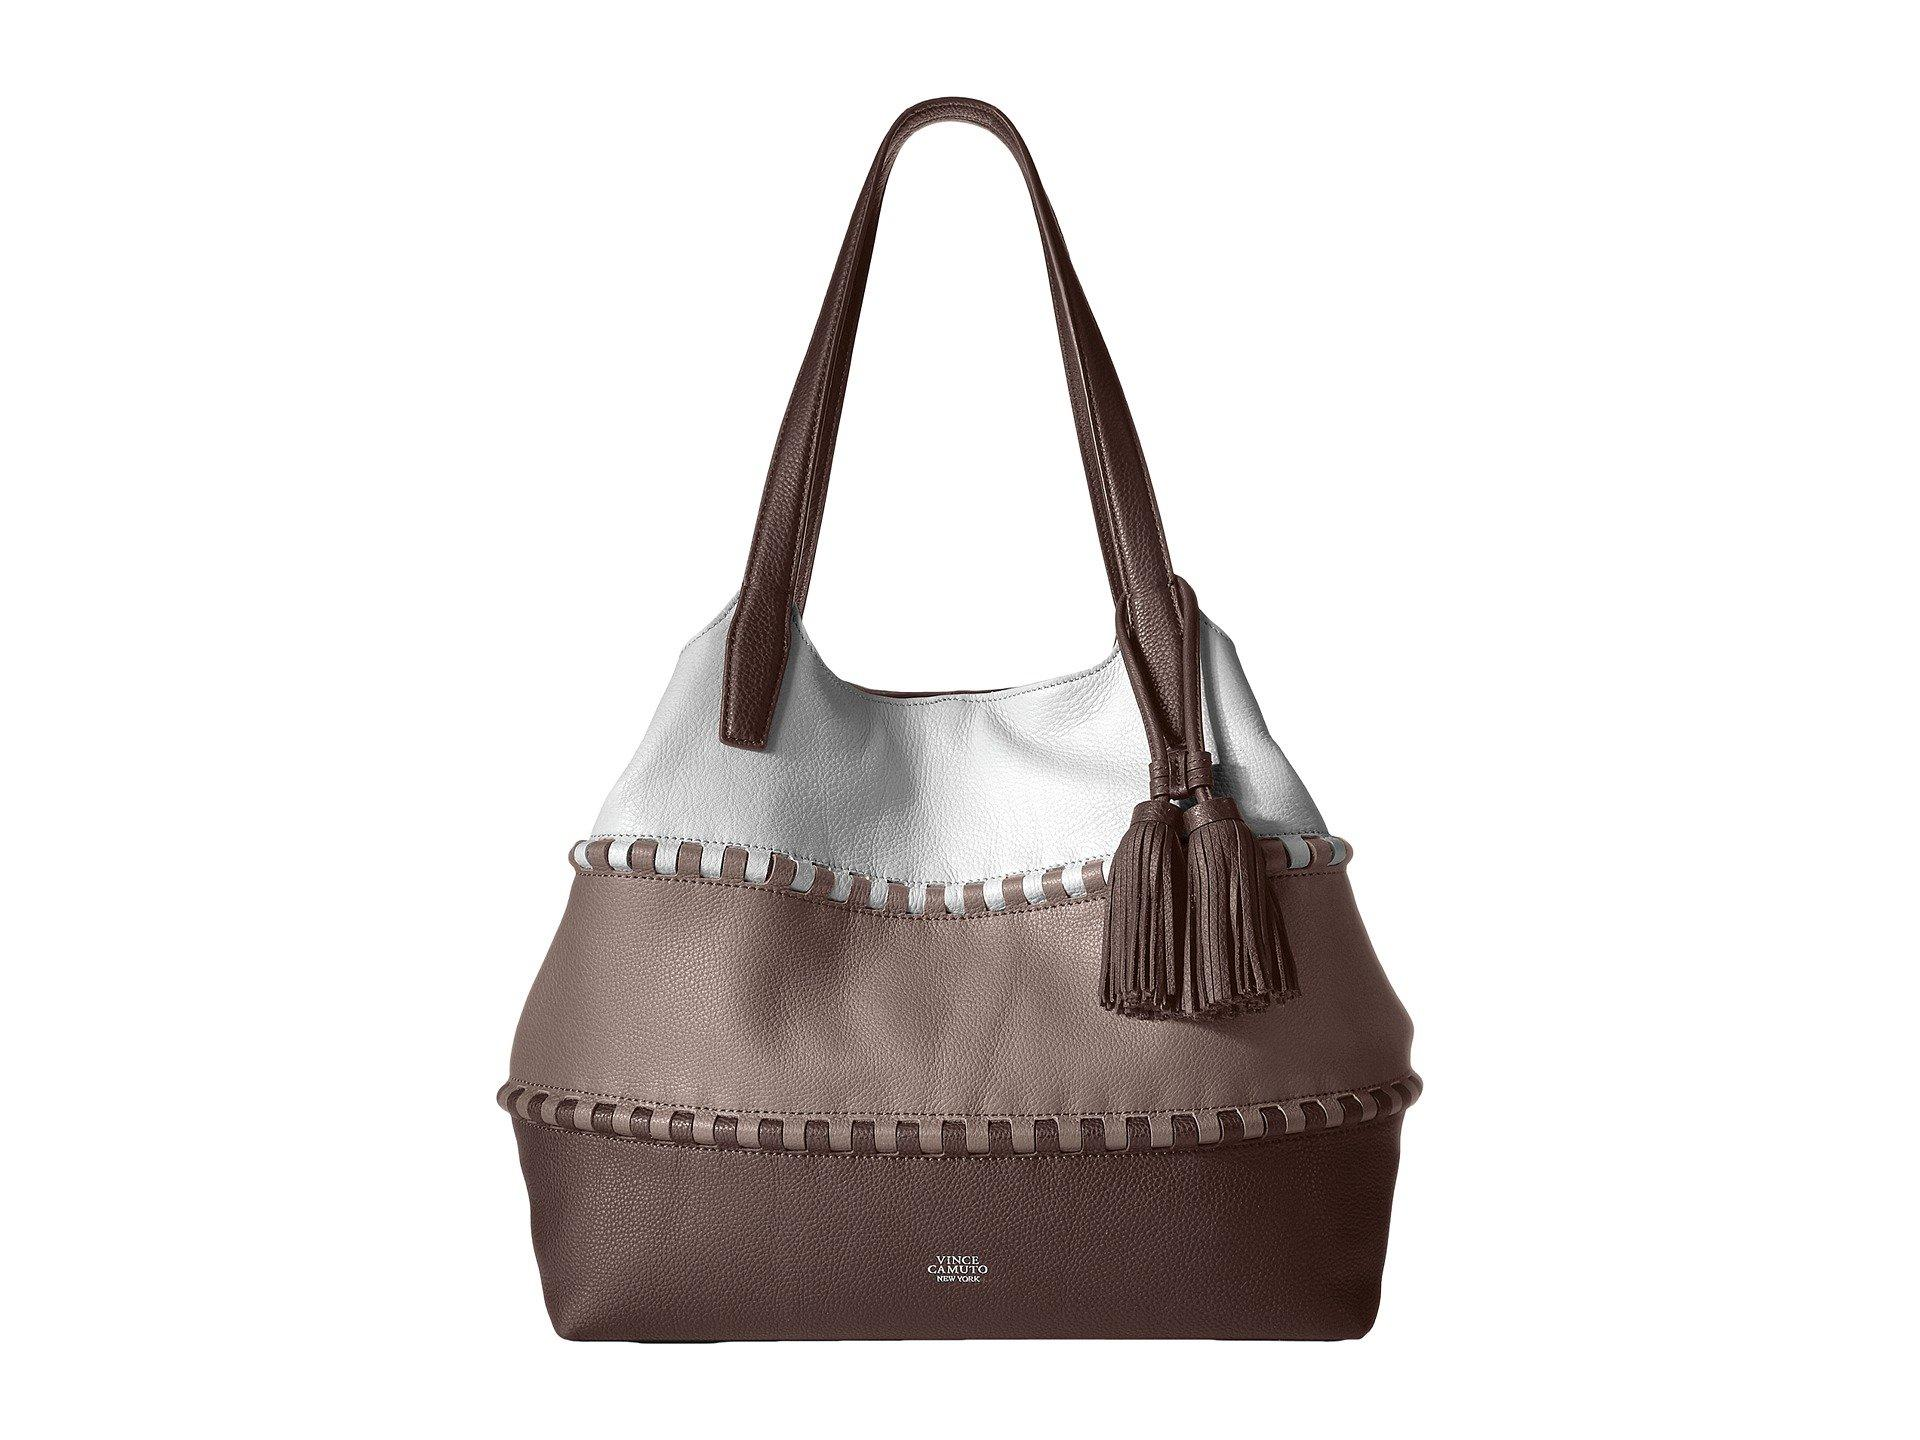 Vince Camuto Edena Tote In Elephant/driftwood